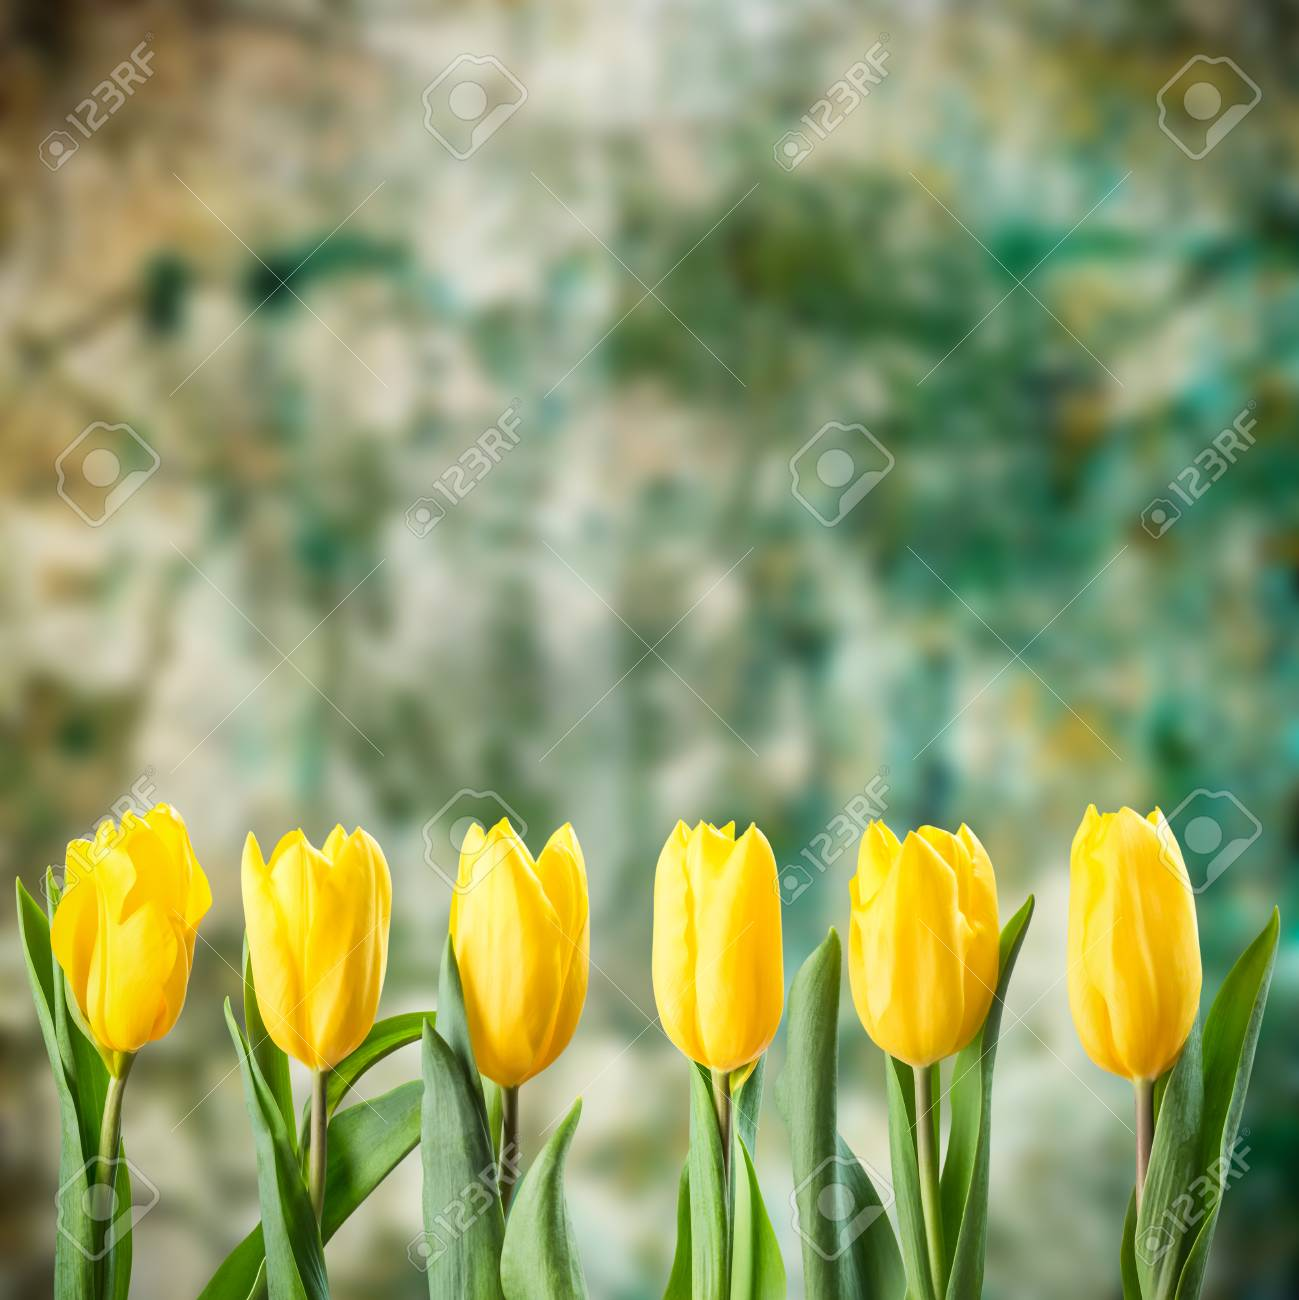 Beautiful Tulip Flowers On Grunge Background For Creative Design